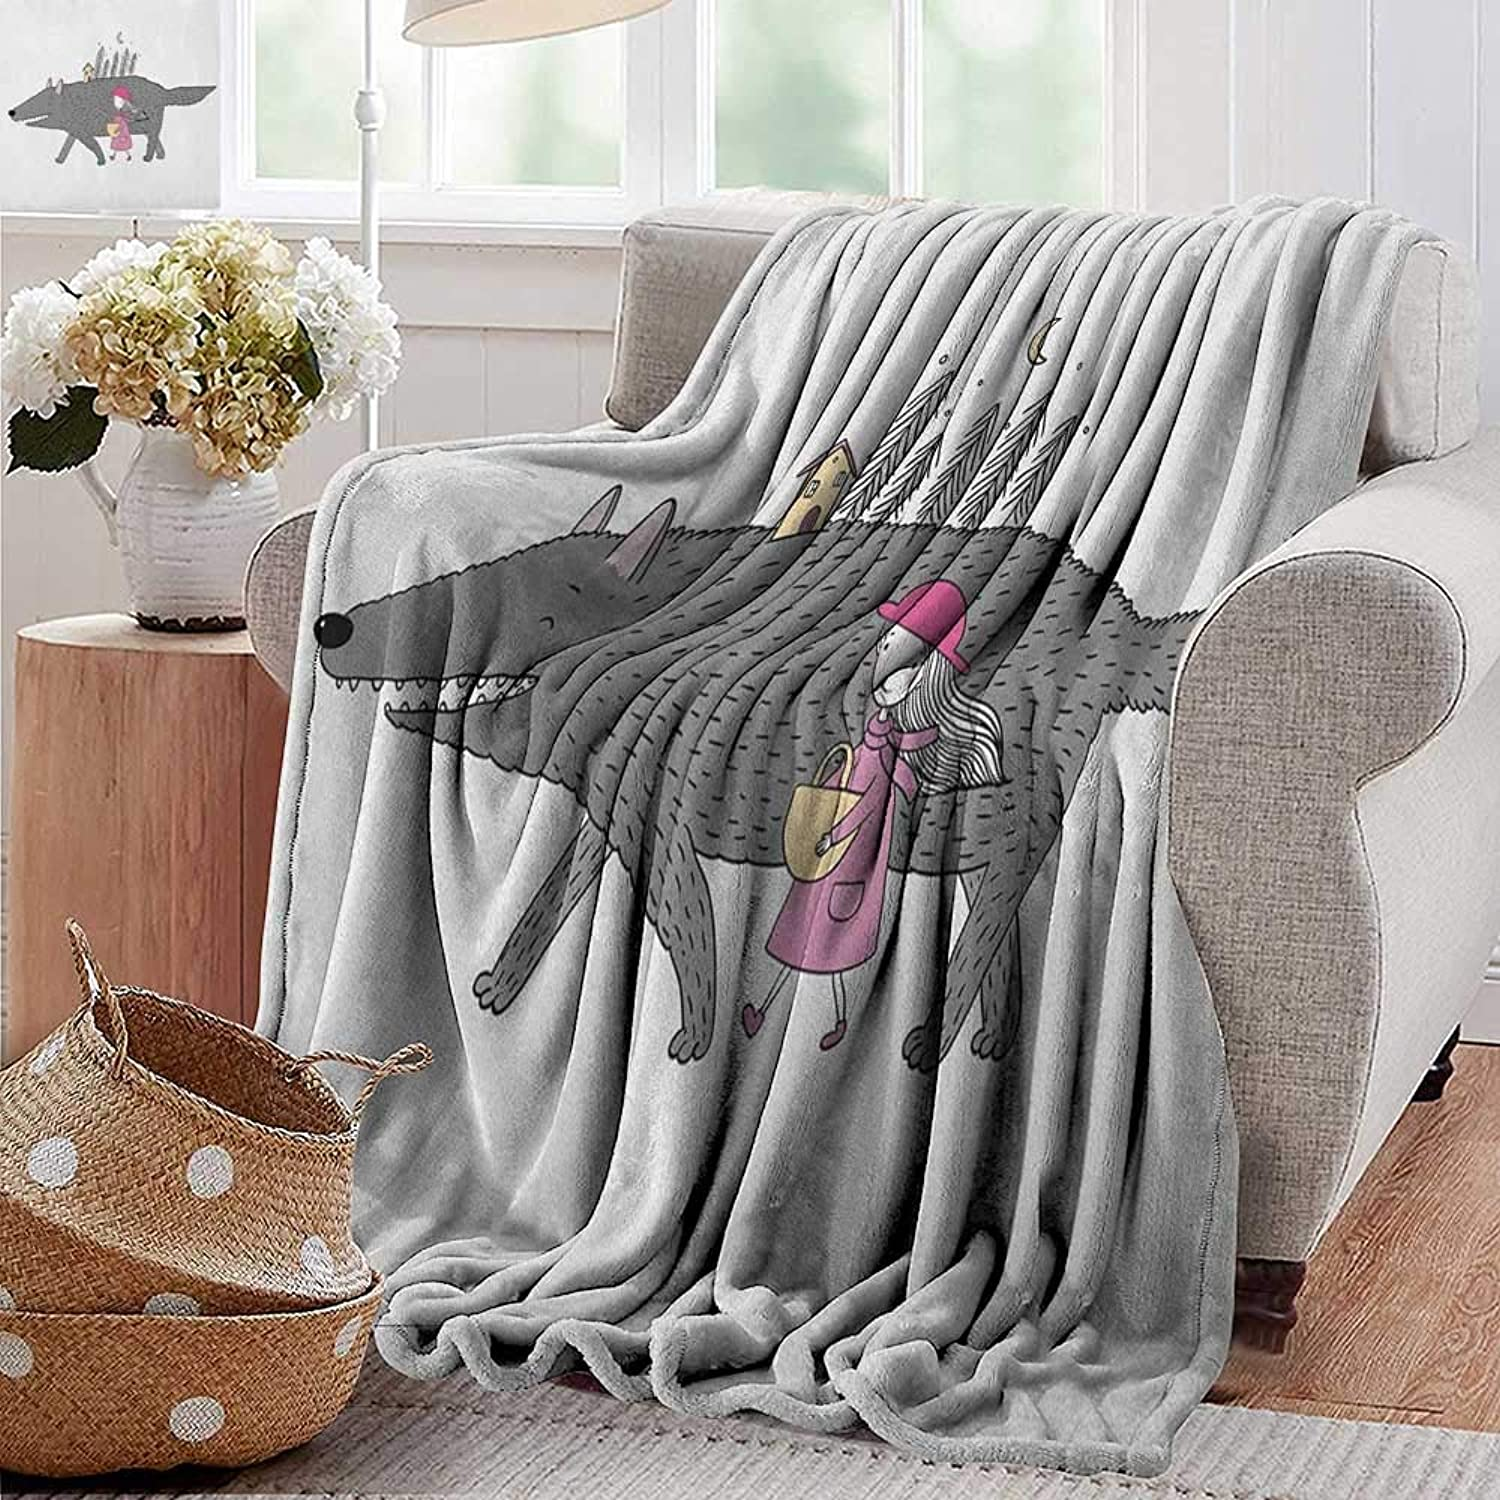 XavieraDoherty Bed Blanket,Fantasy,Girl in a Pink Dress Walking with a Giant Wolf Fir Forest and a Small House, Pink Grey Peach,for Bed & Couch Sofa Easy Care 35 x60